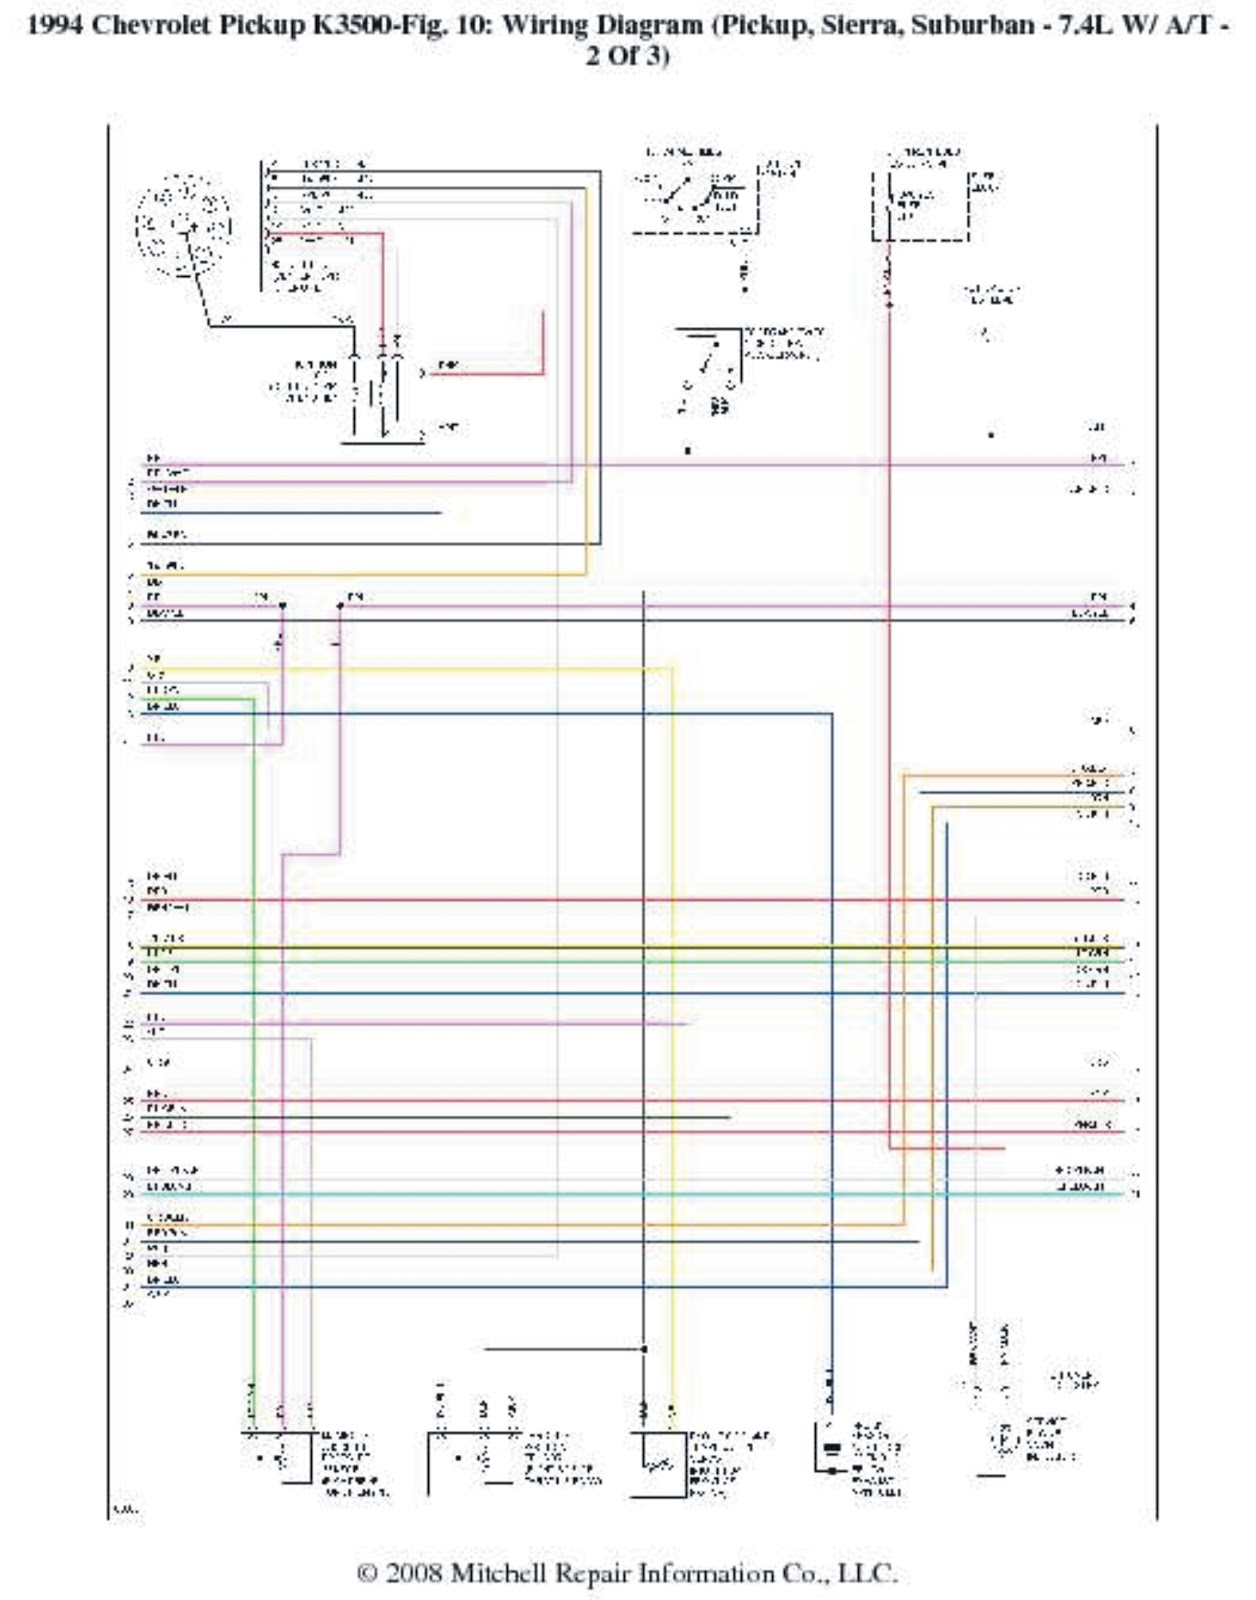 Tail Light Wiring Diagram For 1986 Toyota Pickup Trusted Wiring BMW E46 Tail  Light Wiring Diagram 94 Toyota Truck Tail Light Wiring Diagram